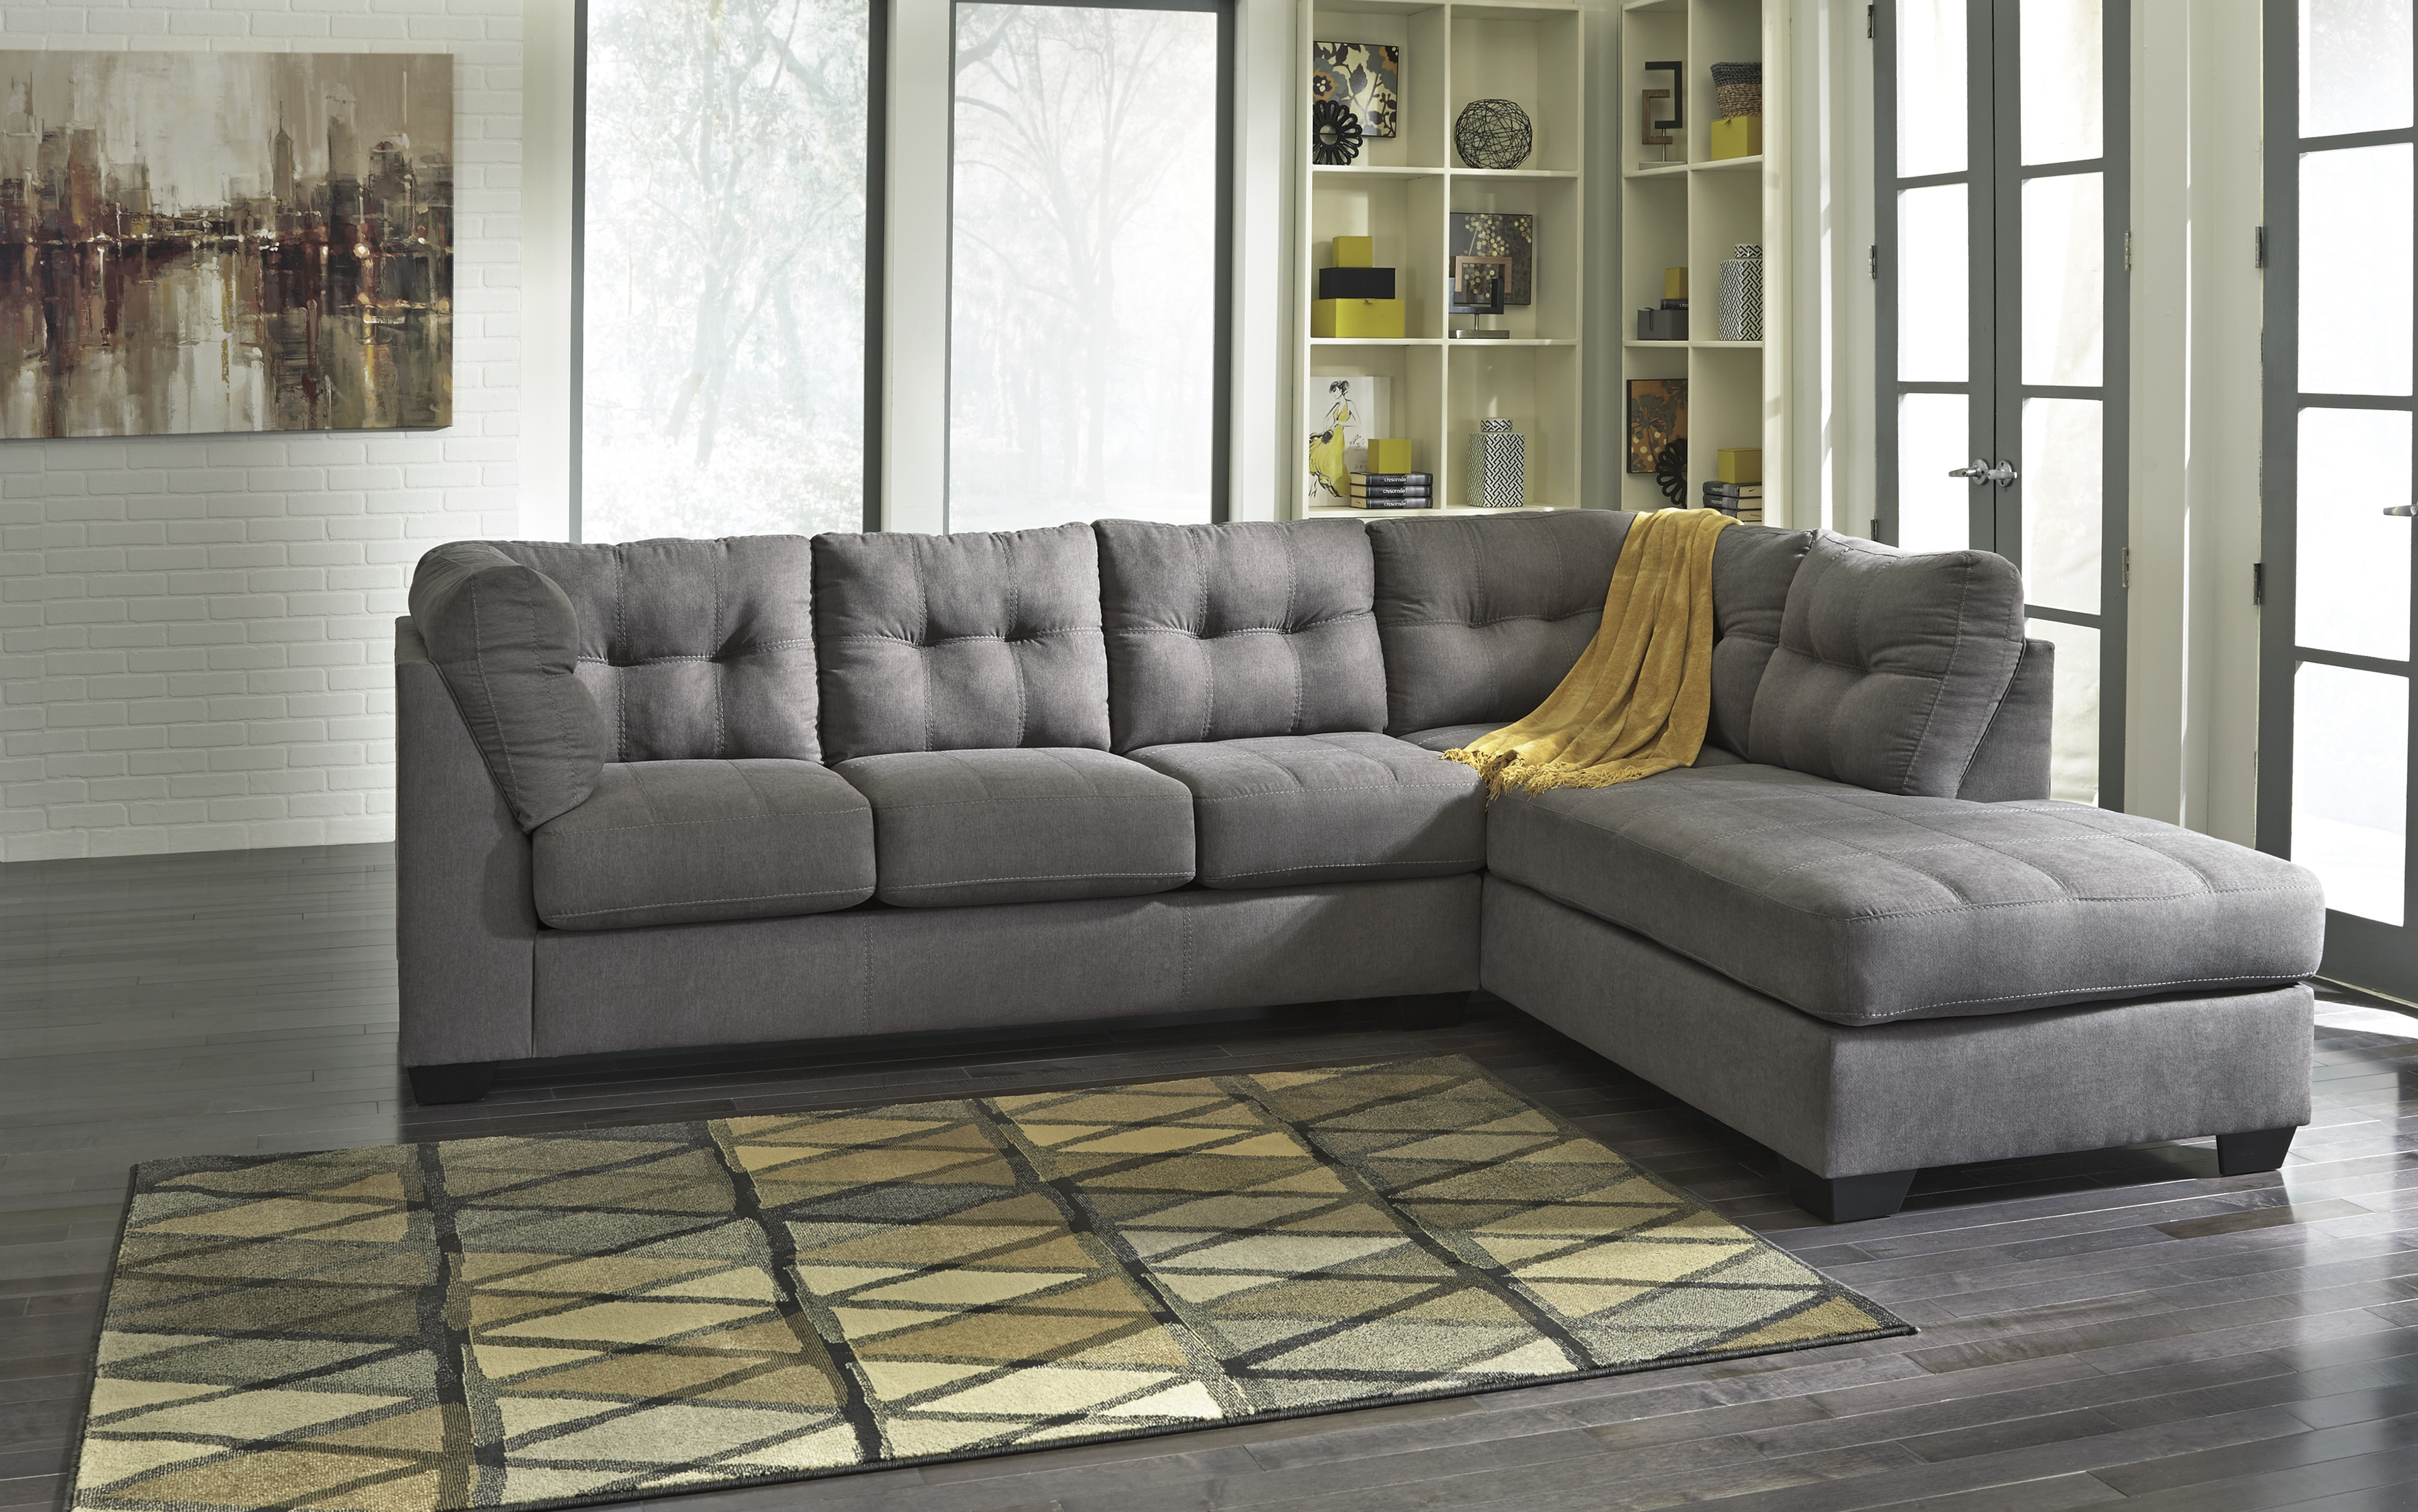 Couch: Best Gray Couch Ashley Furniture Standard Couch, Gray Couch With Regard To Well Known Ashley Tufted Sofas (View 8 of 15)